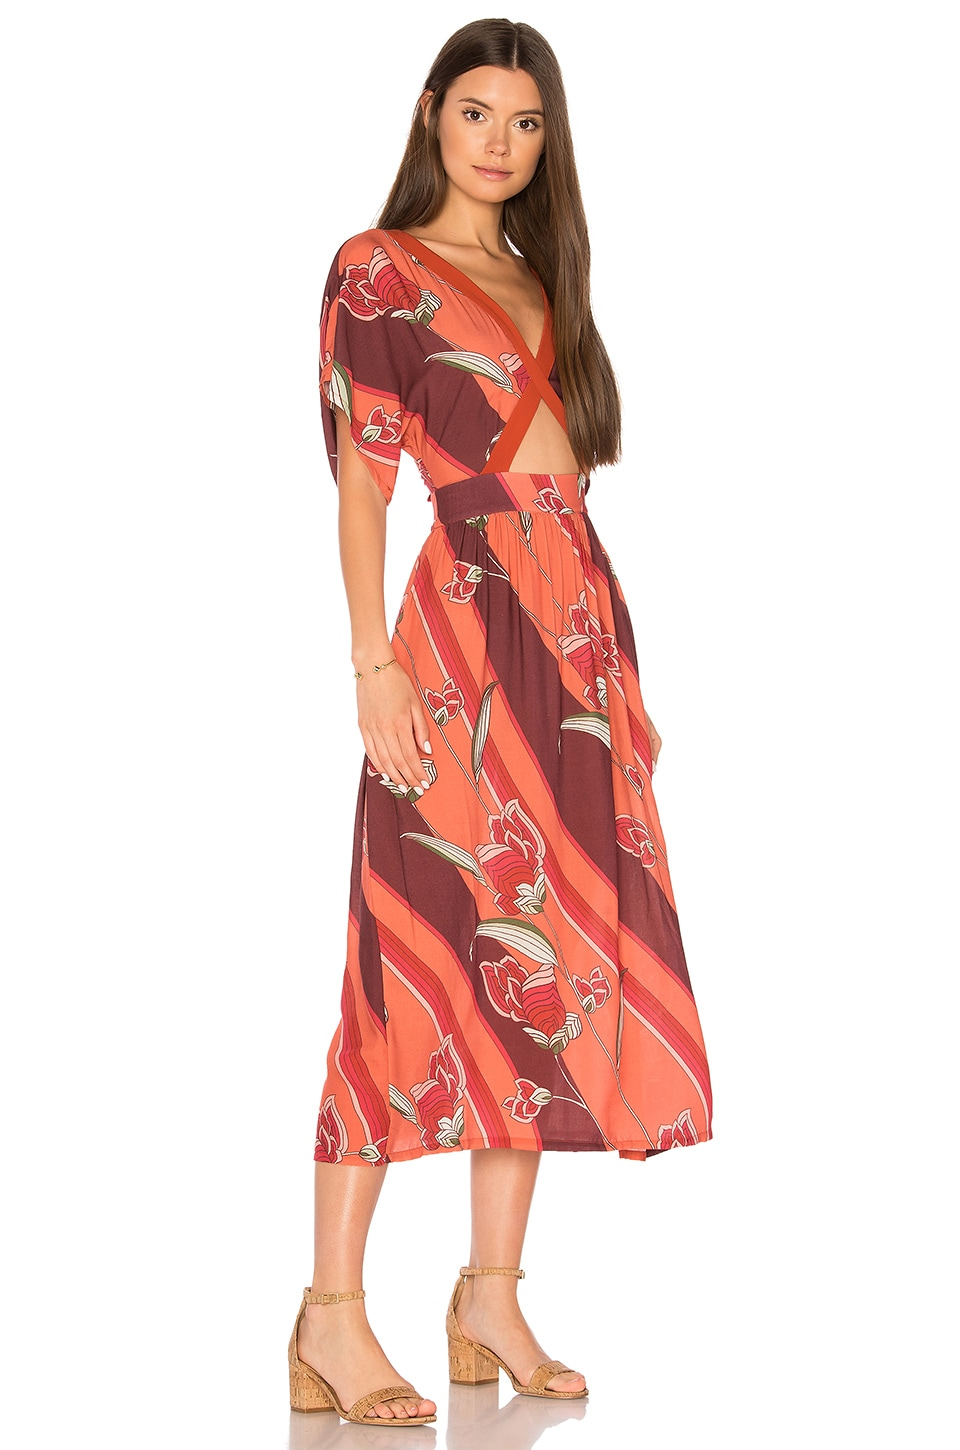 NOVELLA ROYALE Helena dress in Rusty Geo Bloom